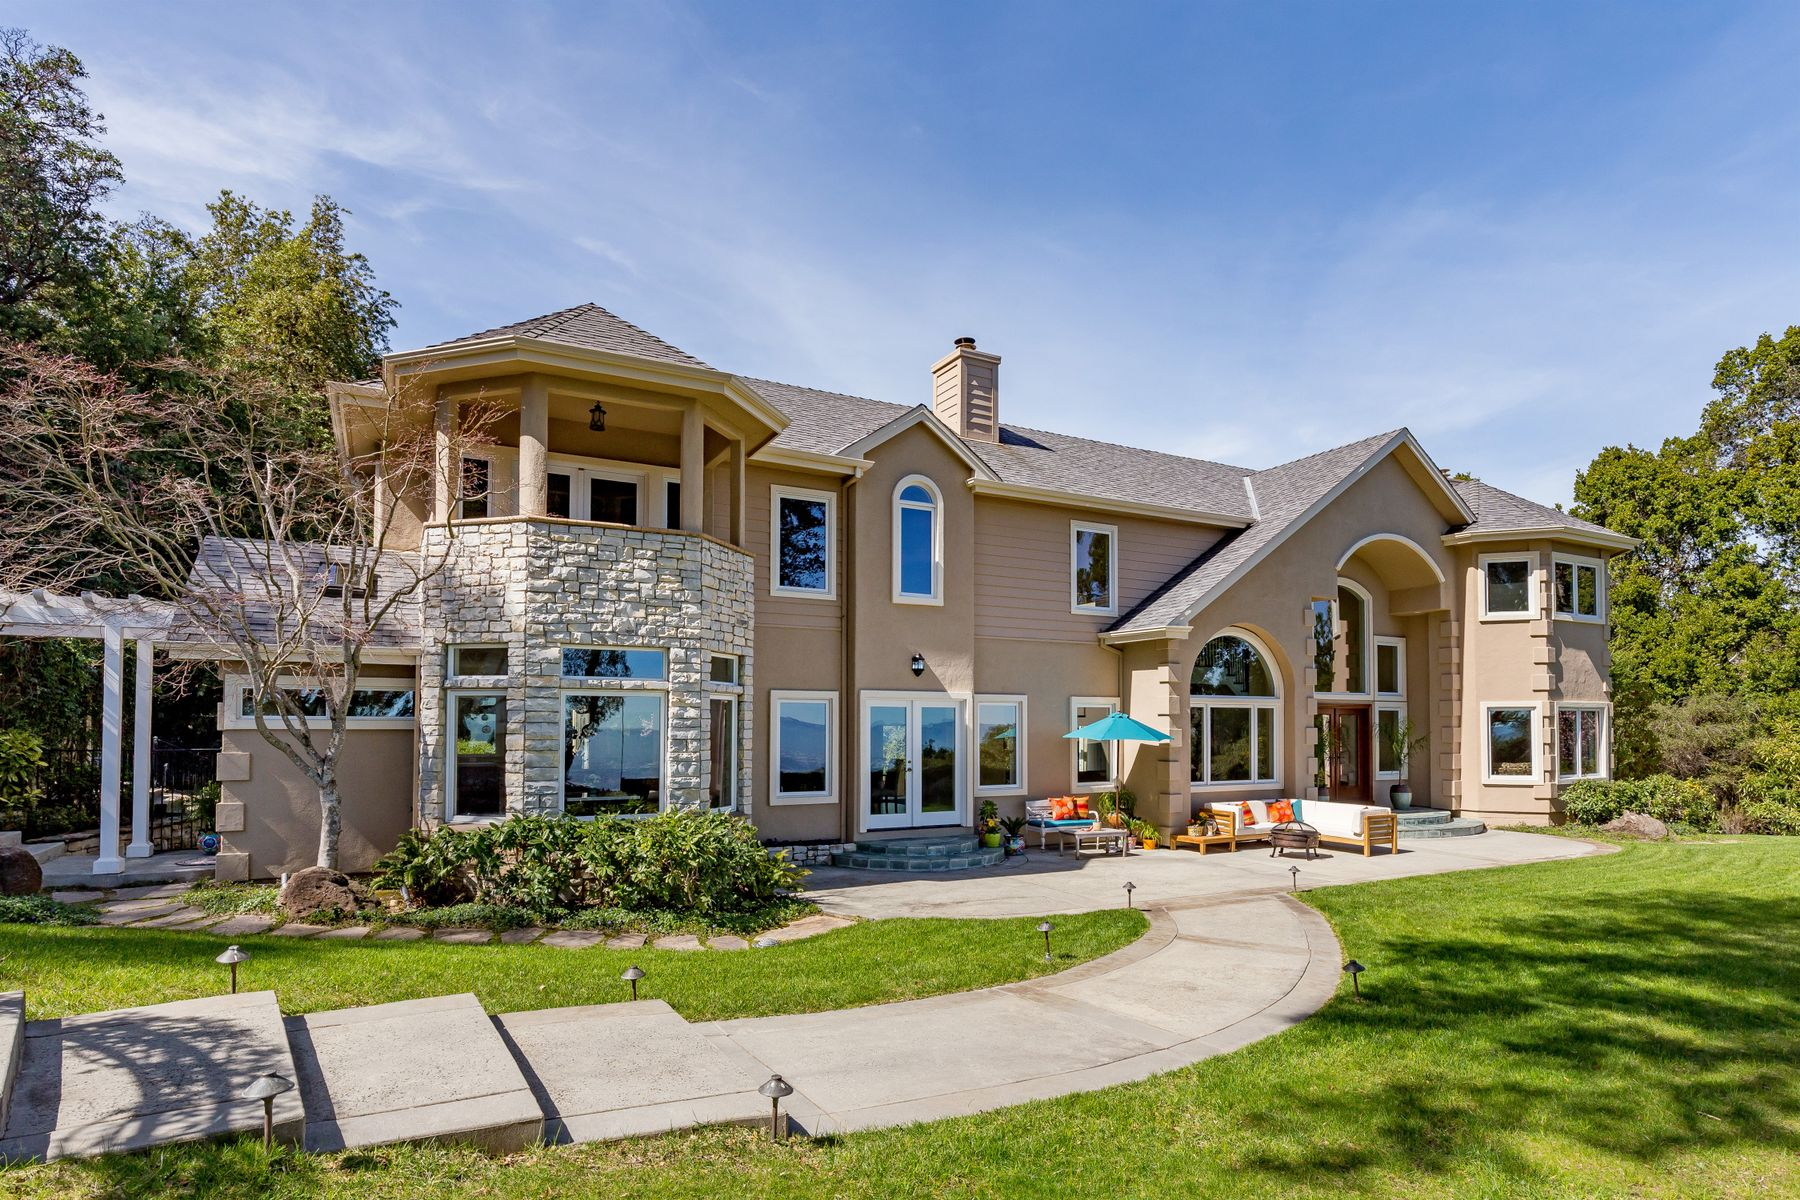 Single Family Homes for Sale at Custom Estate with Spectacular Views! 24645 Heather Hts Saratoga, California 95070 United States